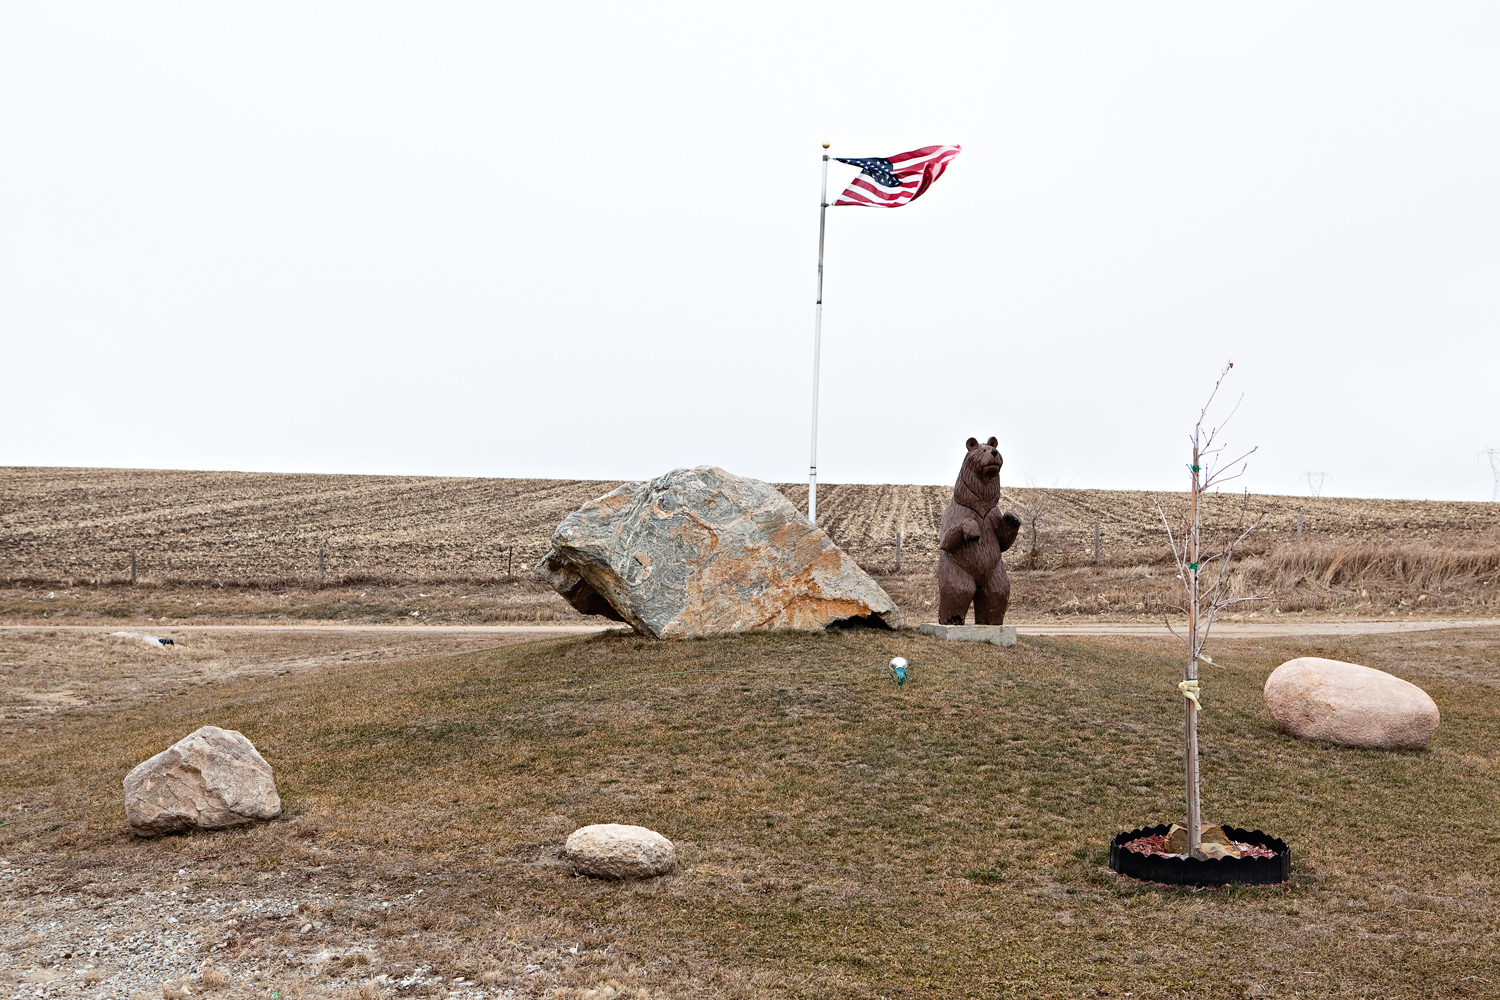 A flag flies over the landscape of Walford, Iowa on January 2, 2012.